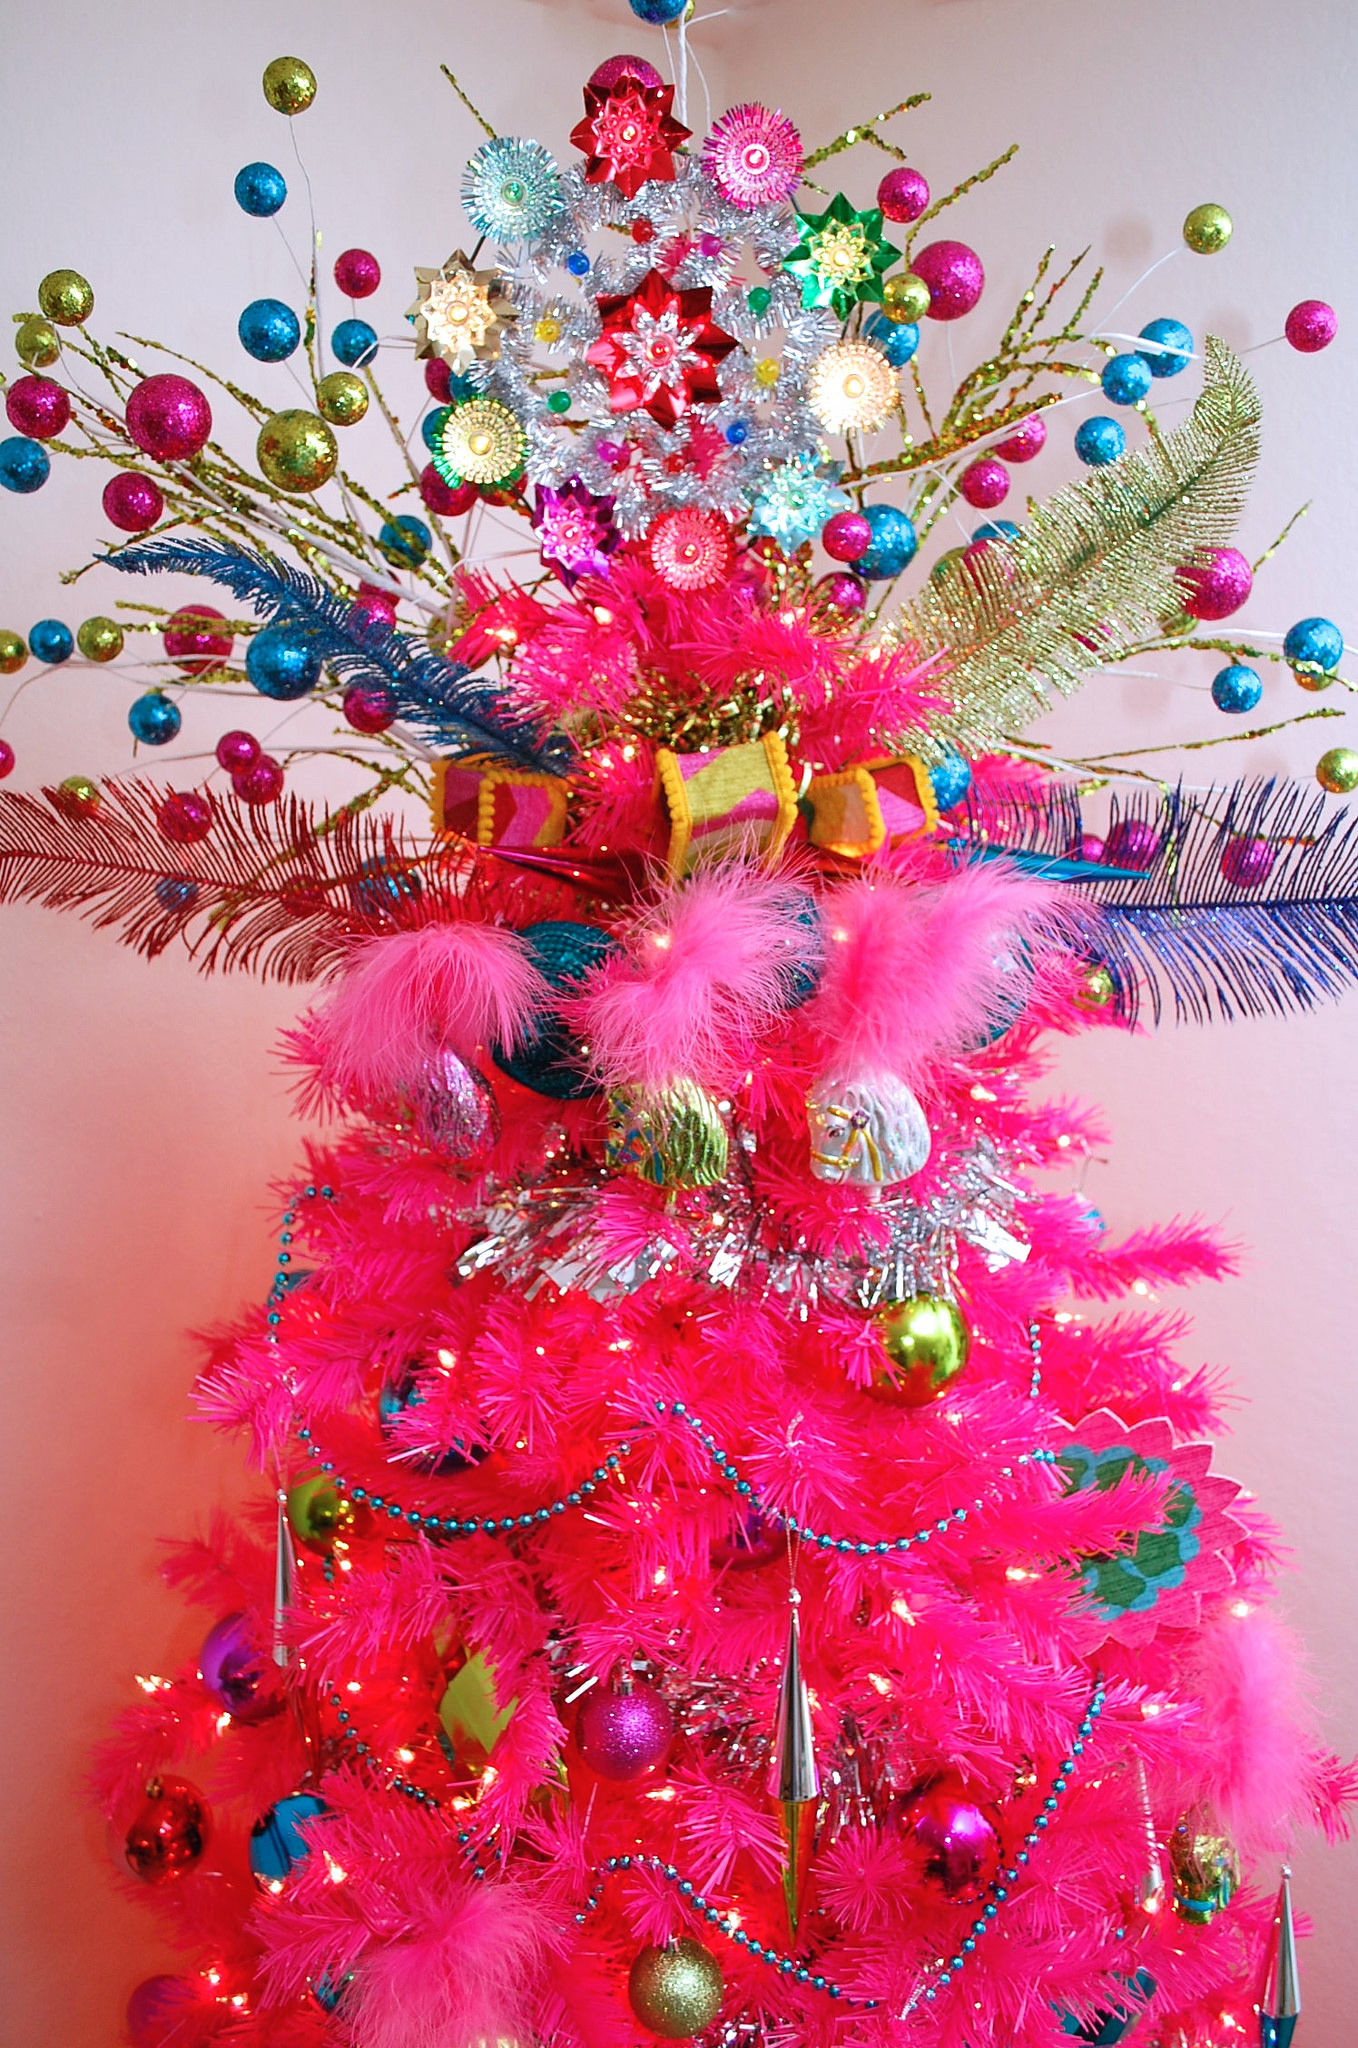 Pink Christmas Tree Decorations Resume Format Download Pdf Inspiring Hot  With Colorful. landscaping pictures. …